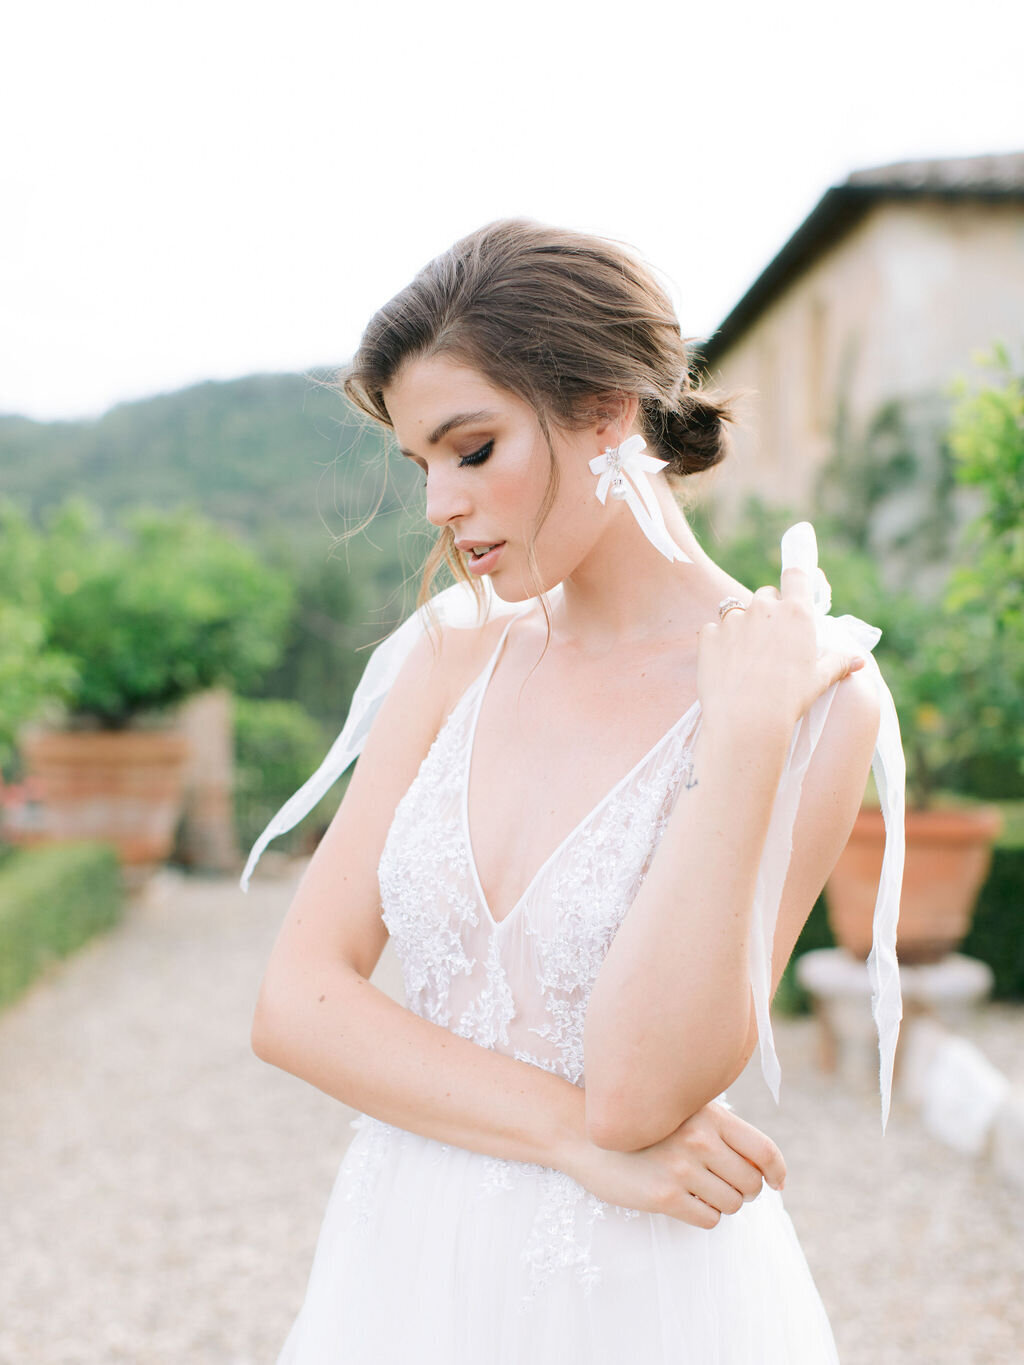 Trine_Juel_hair_and_makeupartist_wedding_Italy_Castello_Di_CelsaQuicksallPhotography_1060